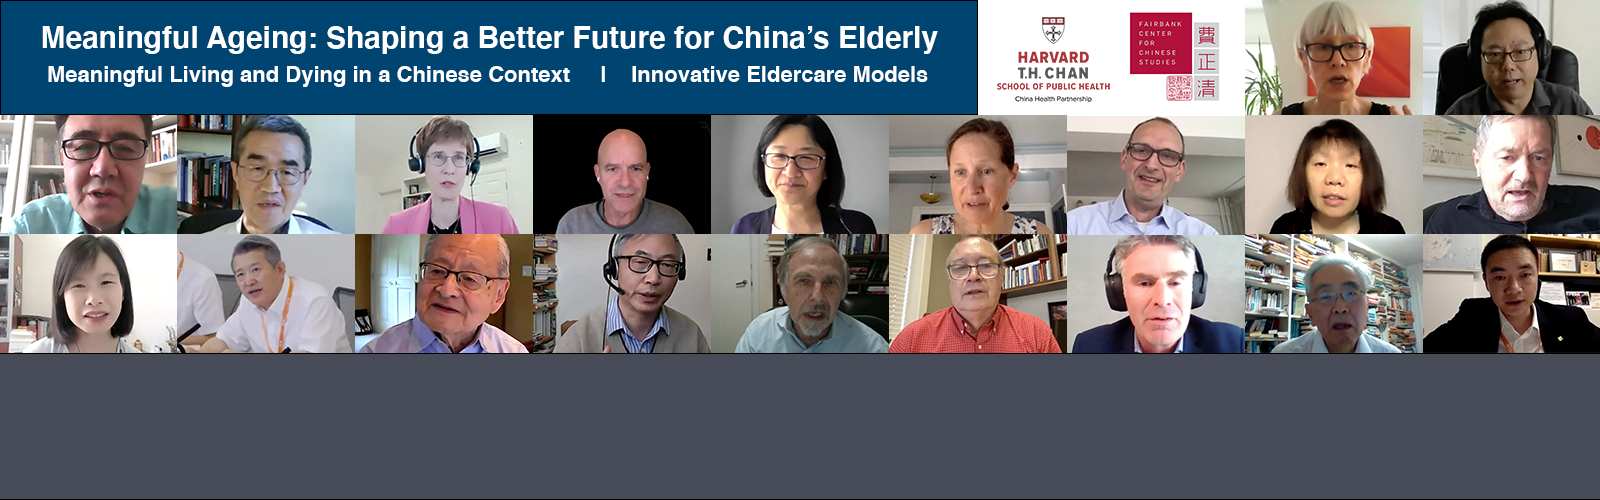 Meaningful Ageing Roundtable